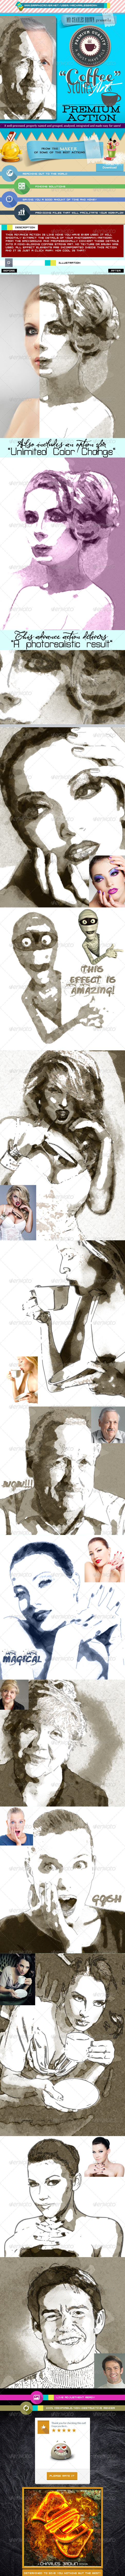 GraphicRiver Advance Coffee Stains Art 5920695